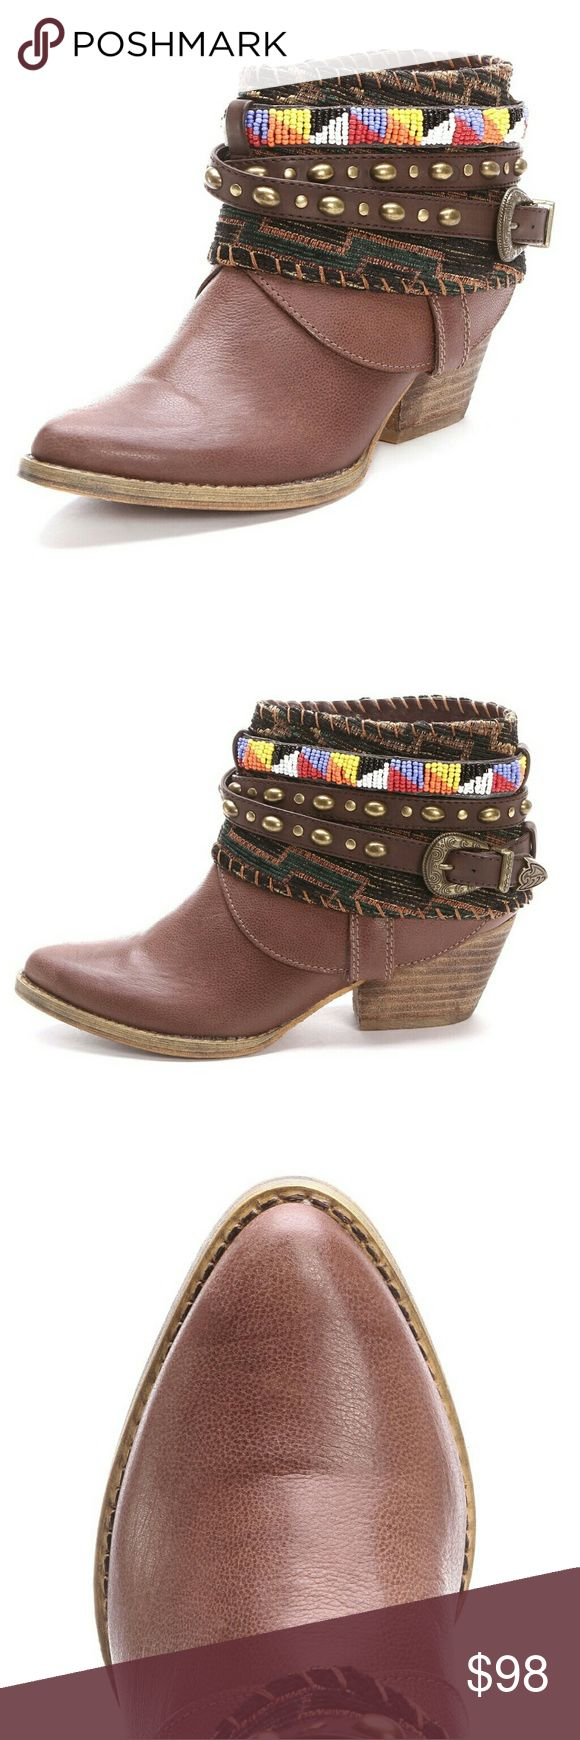 """NWOT Sbicca Beaded Ankle Booties BRAND NEW - IN BOX / Never worn  Sbicca Women's Cleodora Beaded Ankle Boots: The tan material is accented by an aztec print, studded strap, and beaded cuff around the ankle that really makes them stand out! The wedge heel helps these ladies' ankle booties remain comfortable, as well as the cushioned insole.   Color: Tan  Toe: Pointed Toe  Heel: 2.25""""  Shaft: 5""""  Upper: Leather  Sole: Synthetic  Origin: Imported Sbicca Shoes Ankle Boots & Booties"""